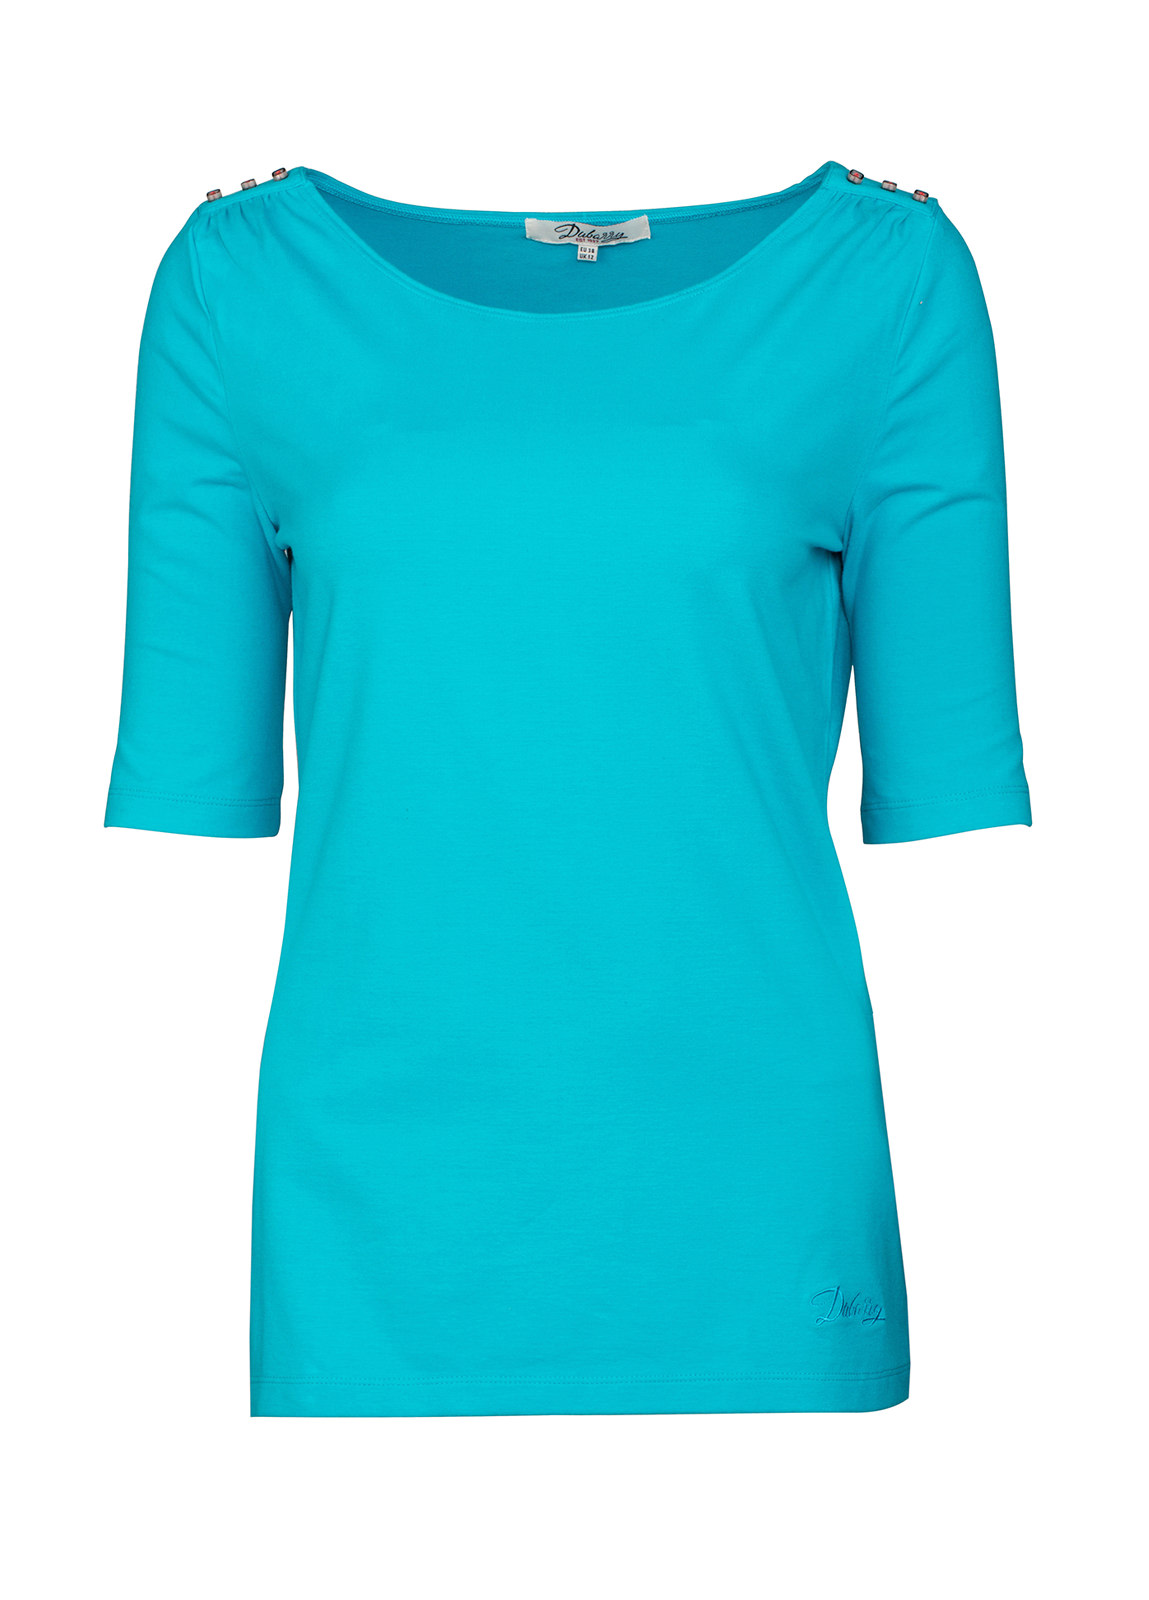 Dubarry_Corofin Ladies Top - Sorrel_Image_2